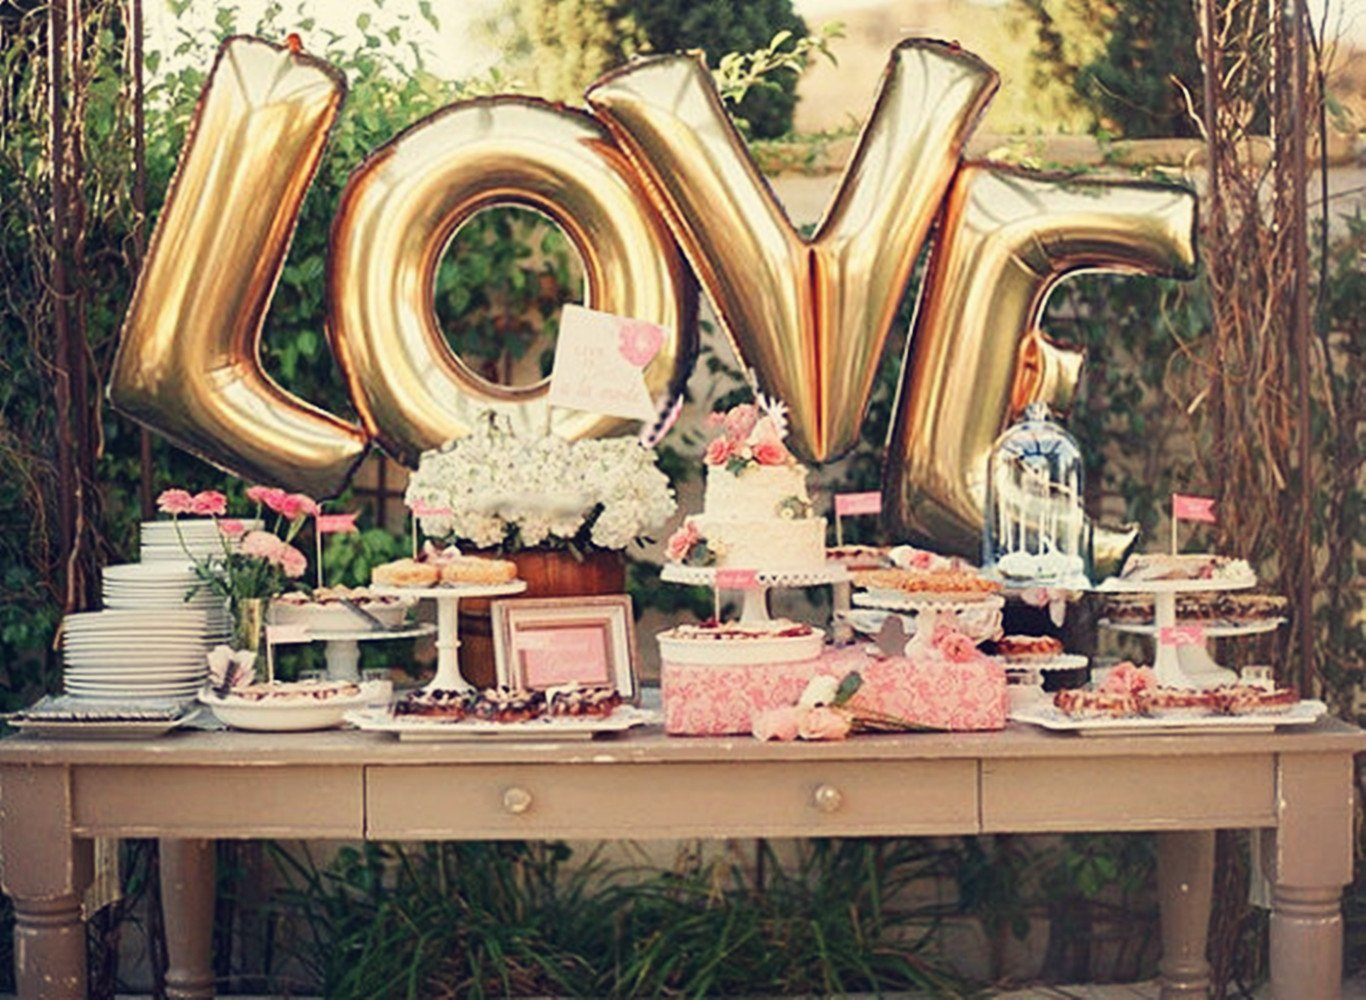 Love Balloon Gold Letter Balloons Decorations for Birthday Bachelorette Engagement Wedding Bridal Shower Graduation Party Supplies